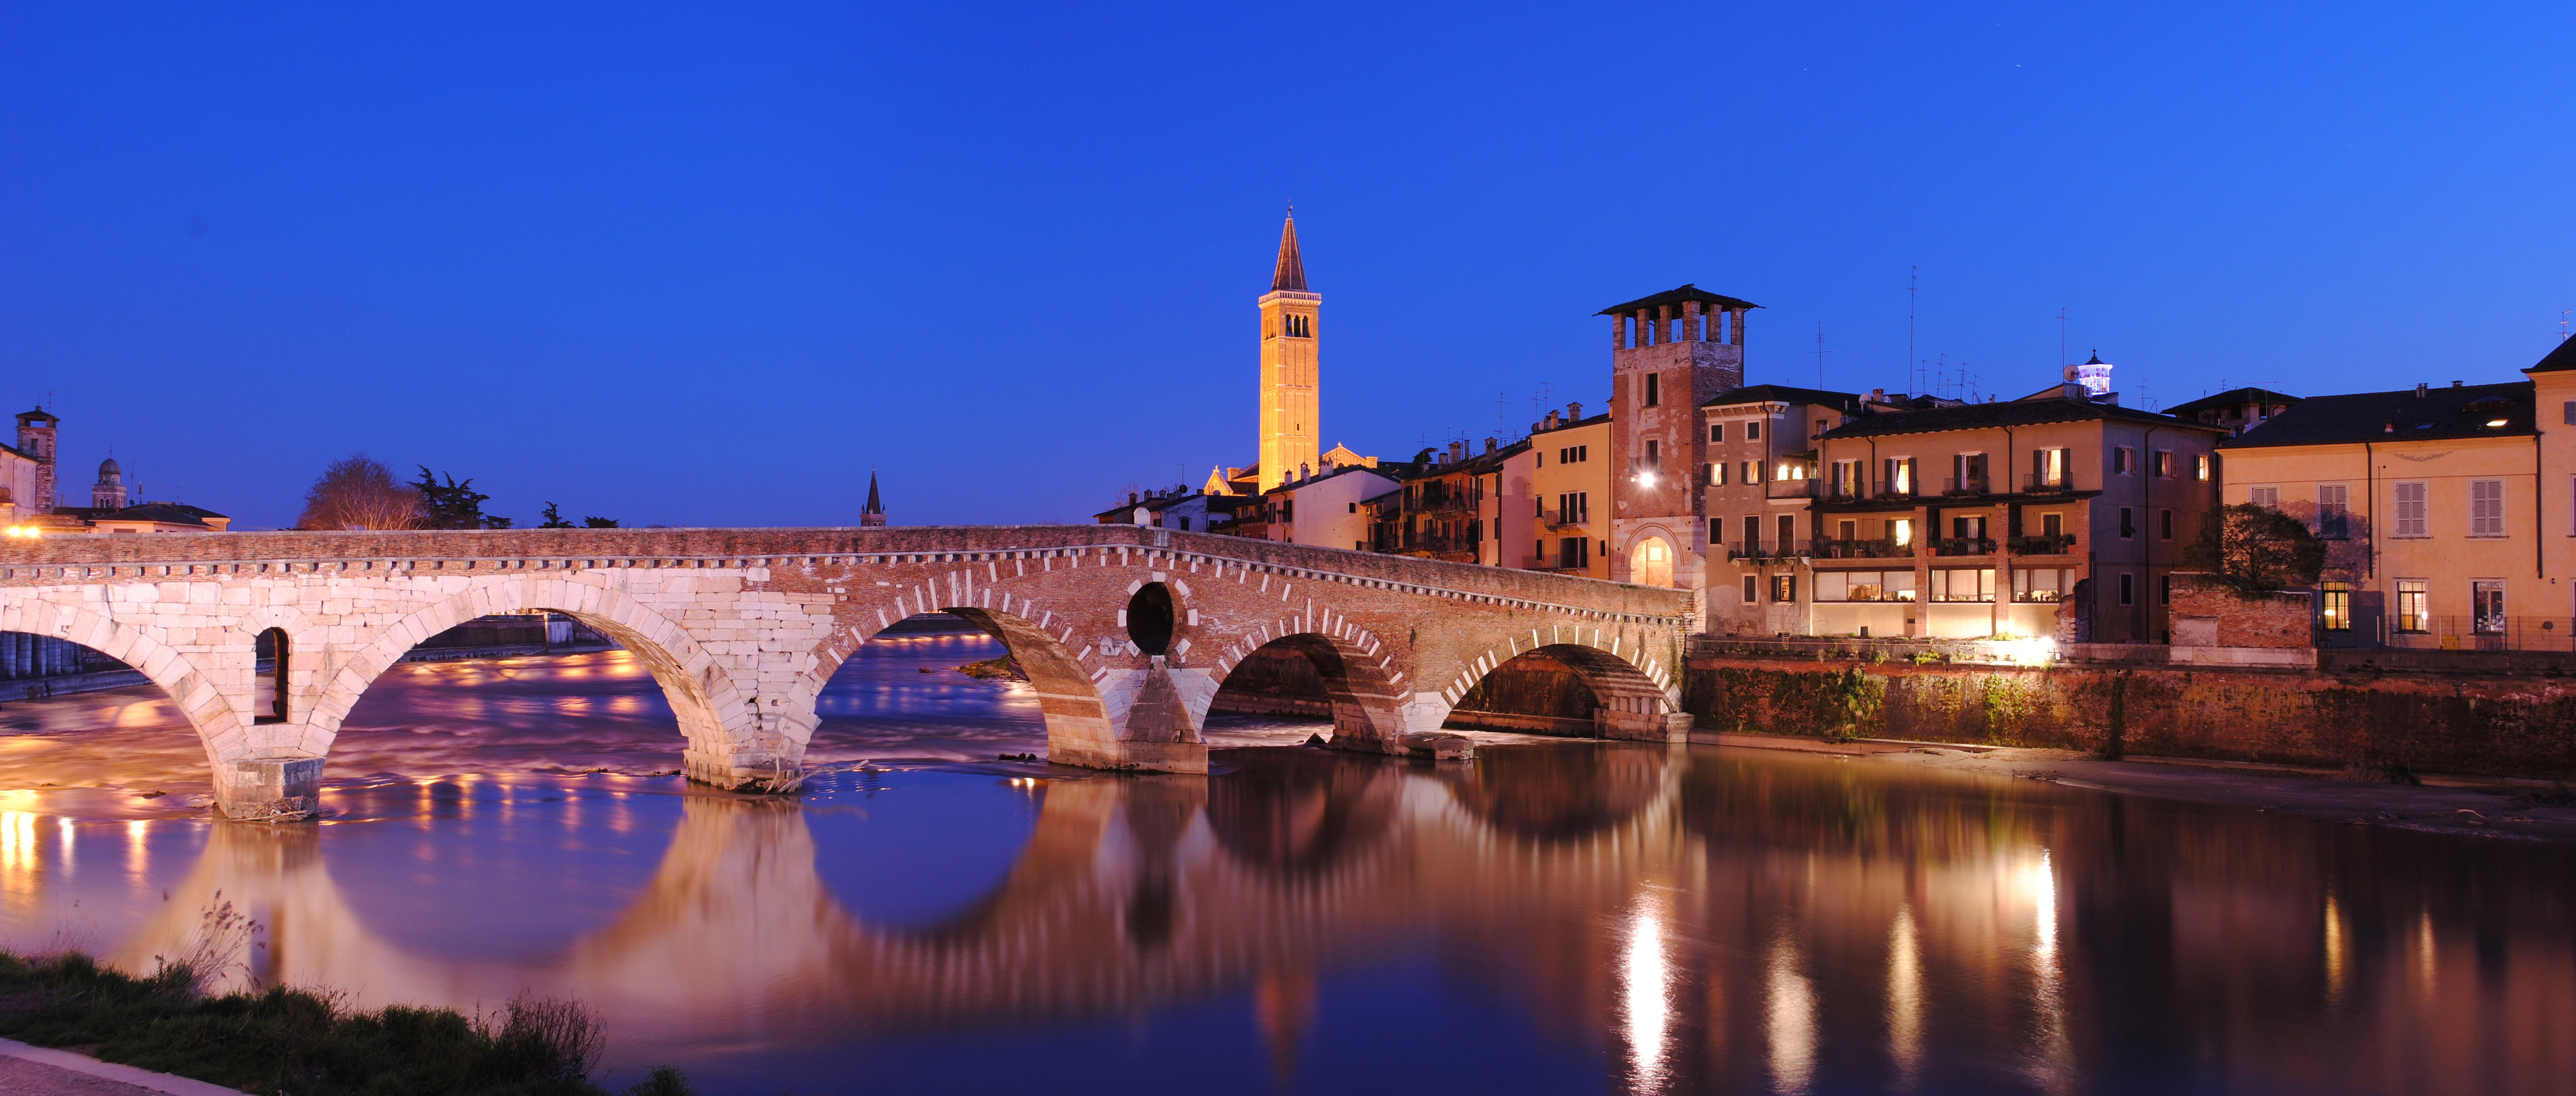 A weekend in verona what to see and where to sleep ecobnb for Verona posti belli da visitare